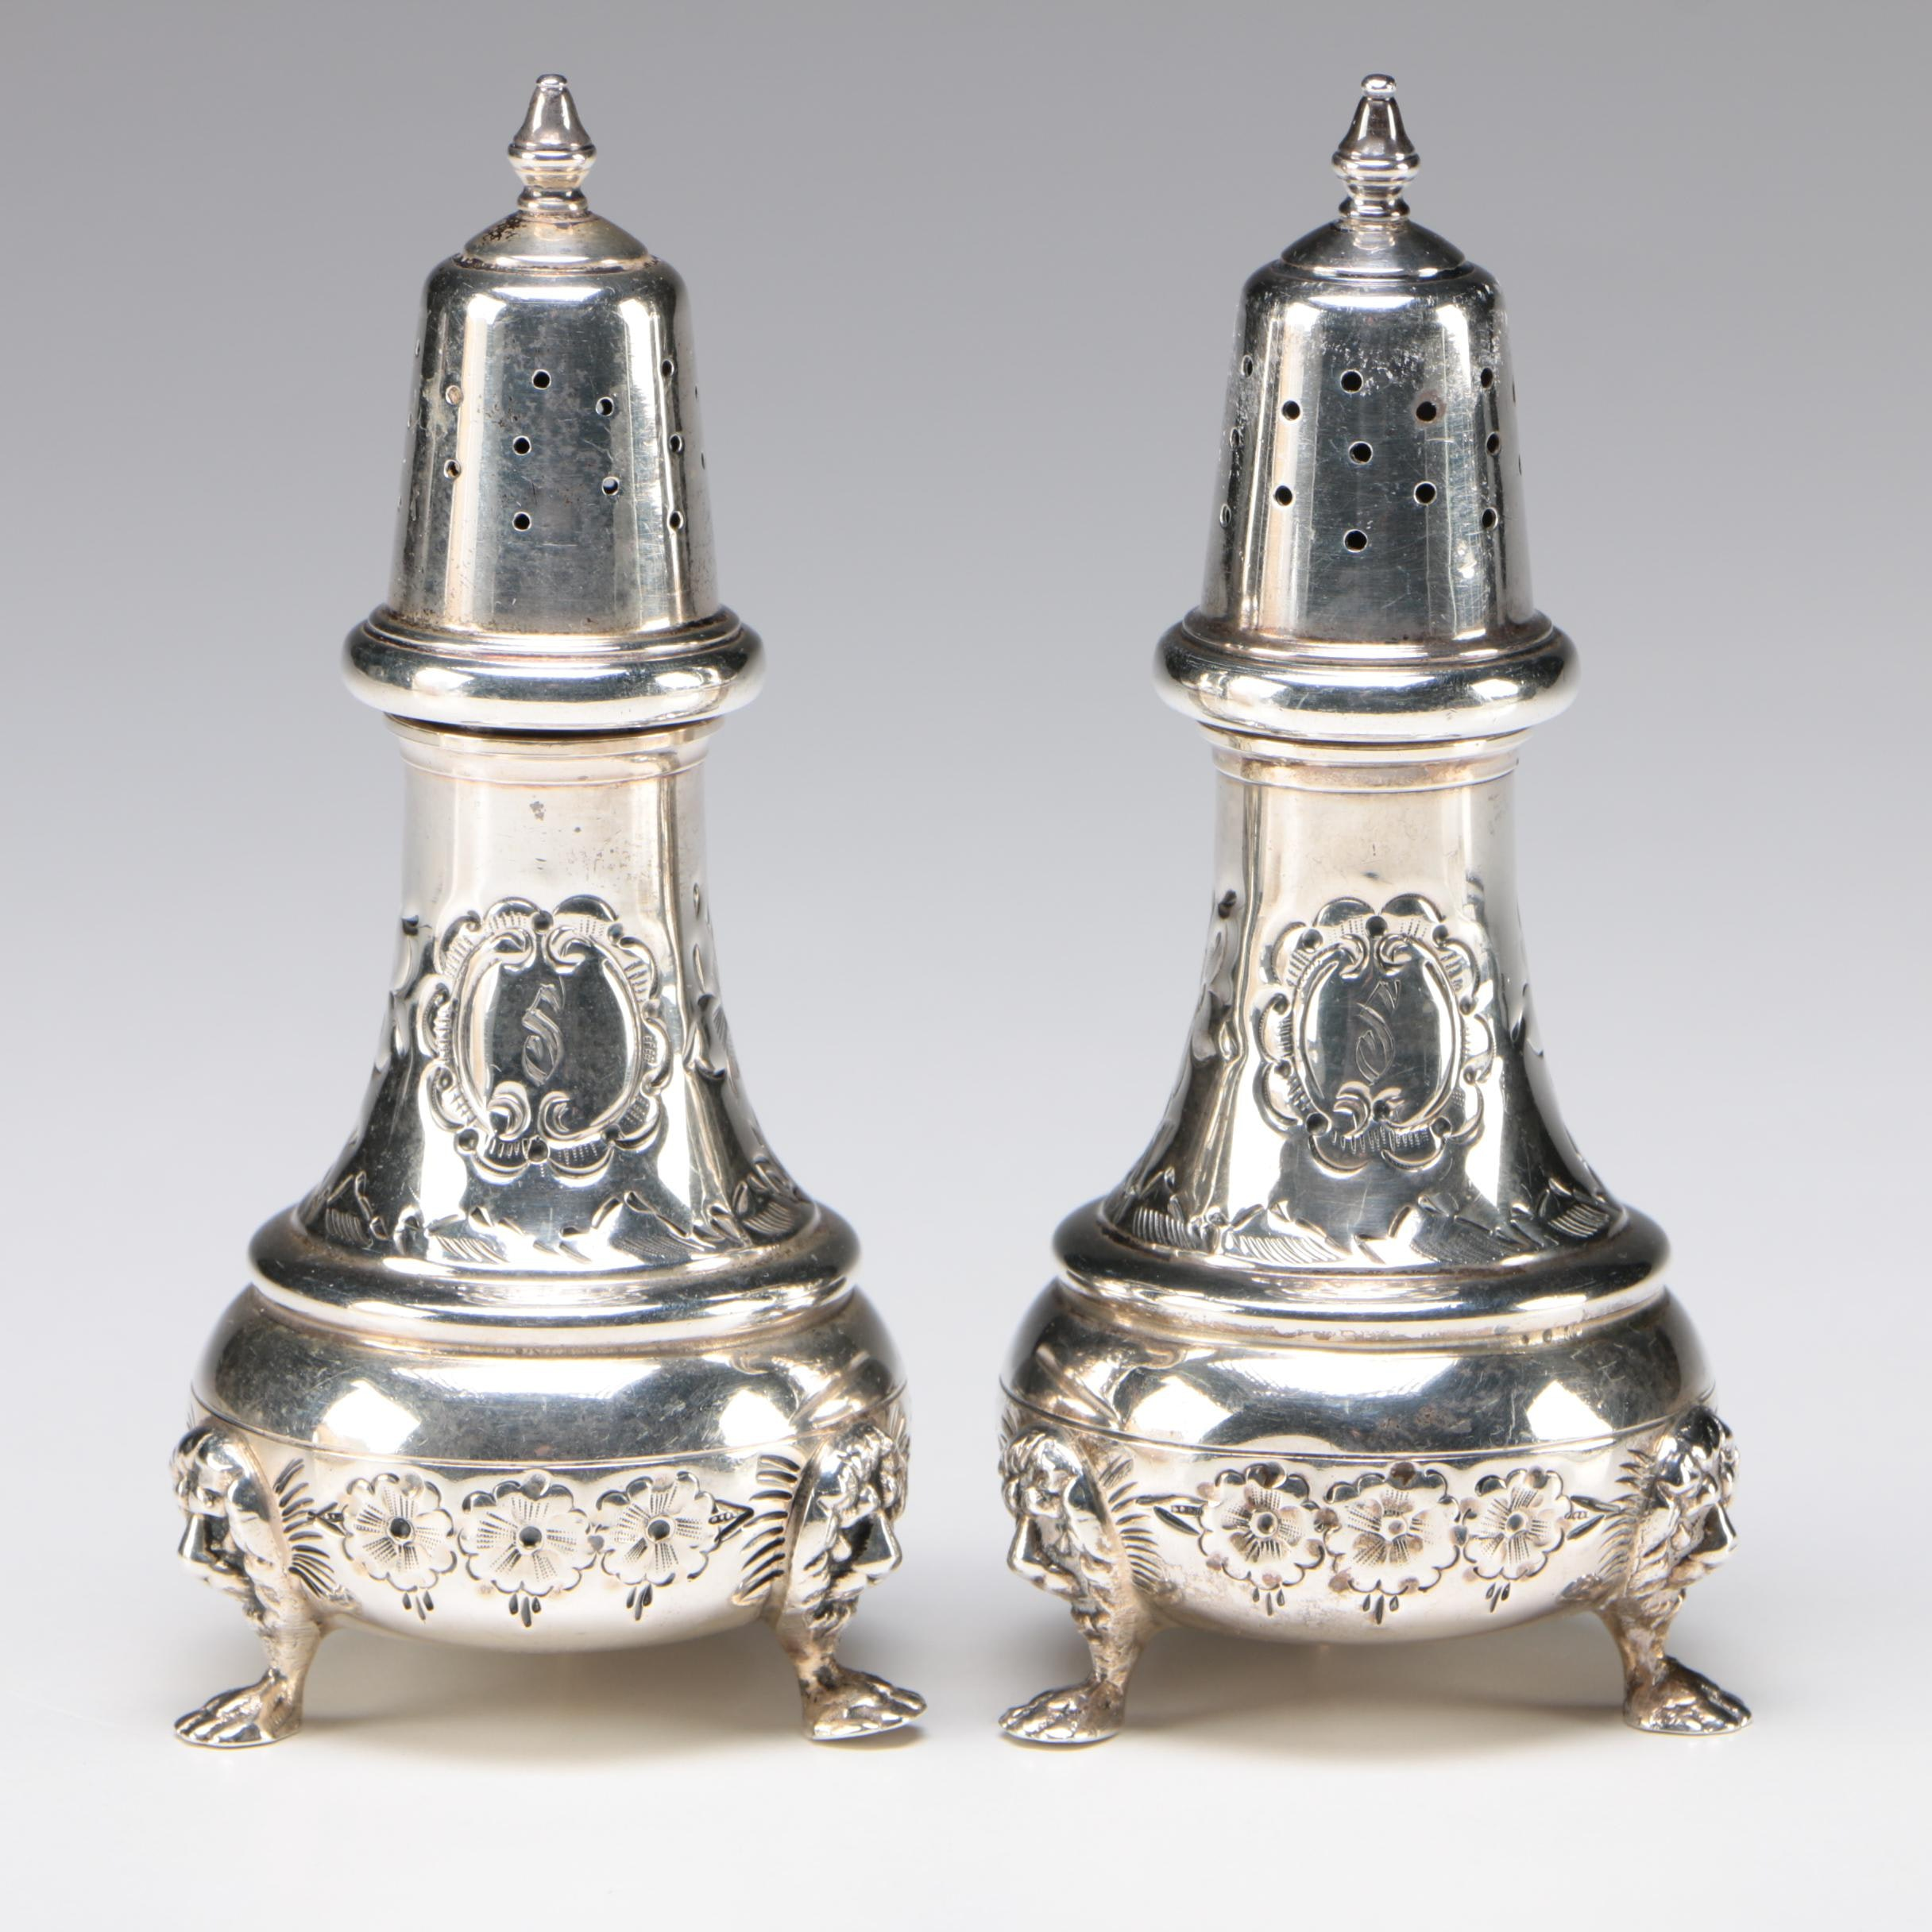 Pair of American Sterling Silver Salt and Pepper Casters with Lion Masks